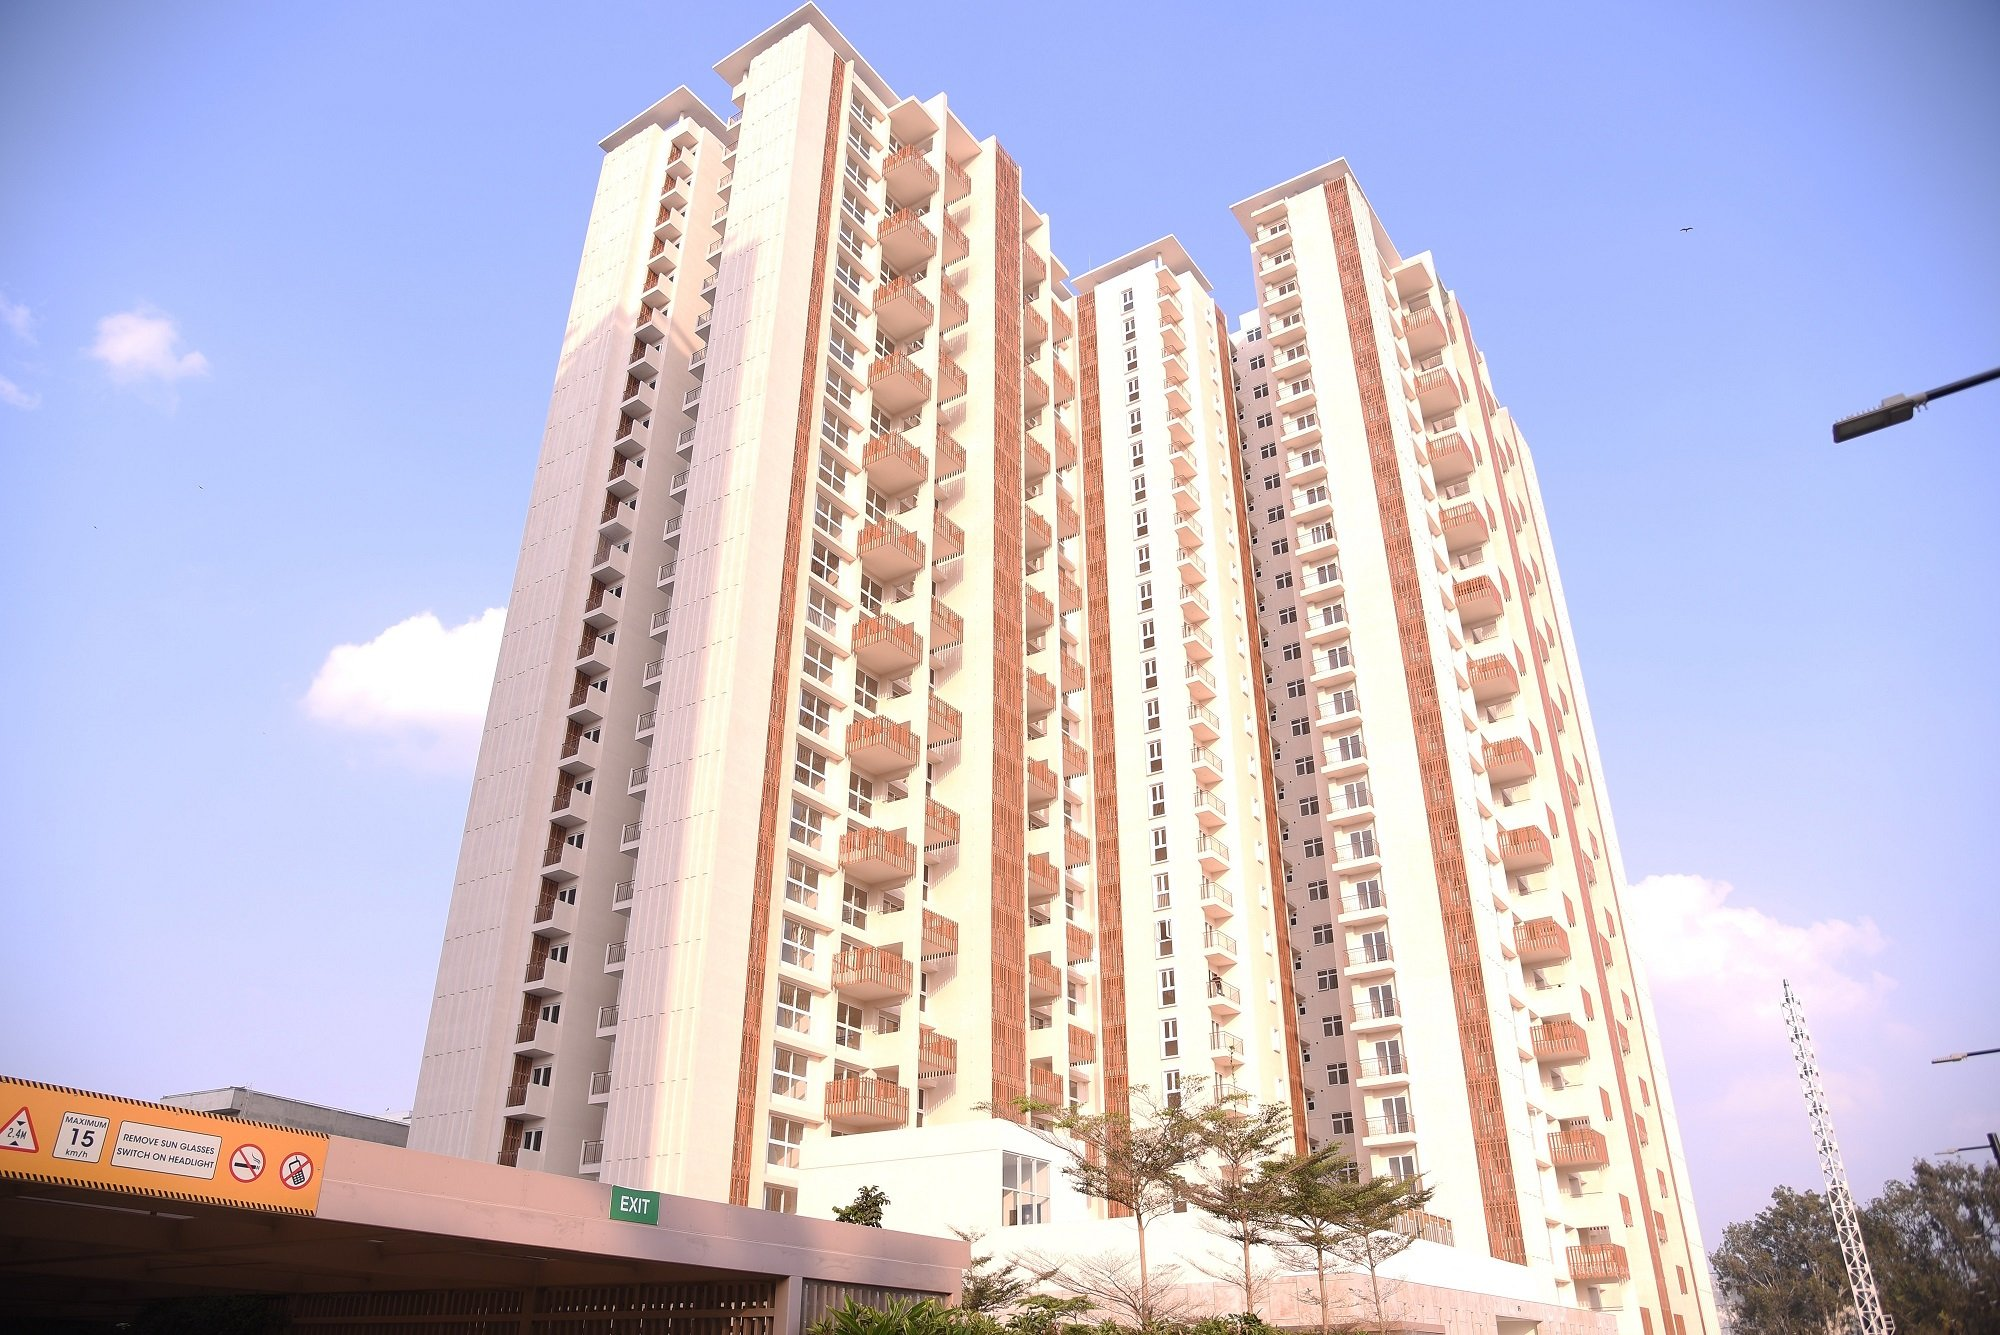 Mahindra windchimes luxury apartments in Bangalore | Luxuryproperties.in